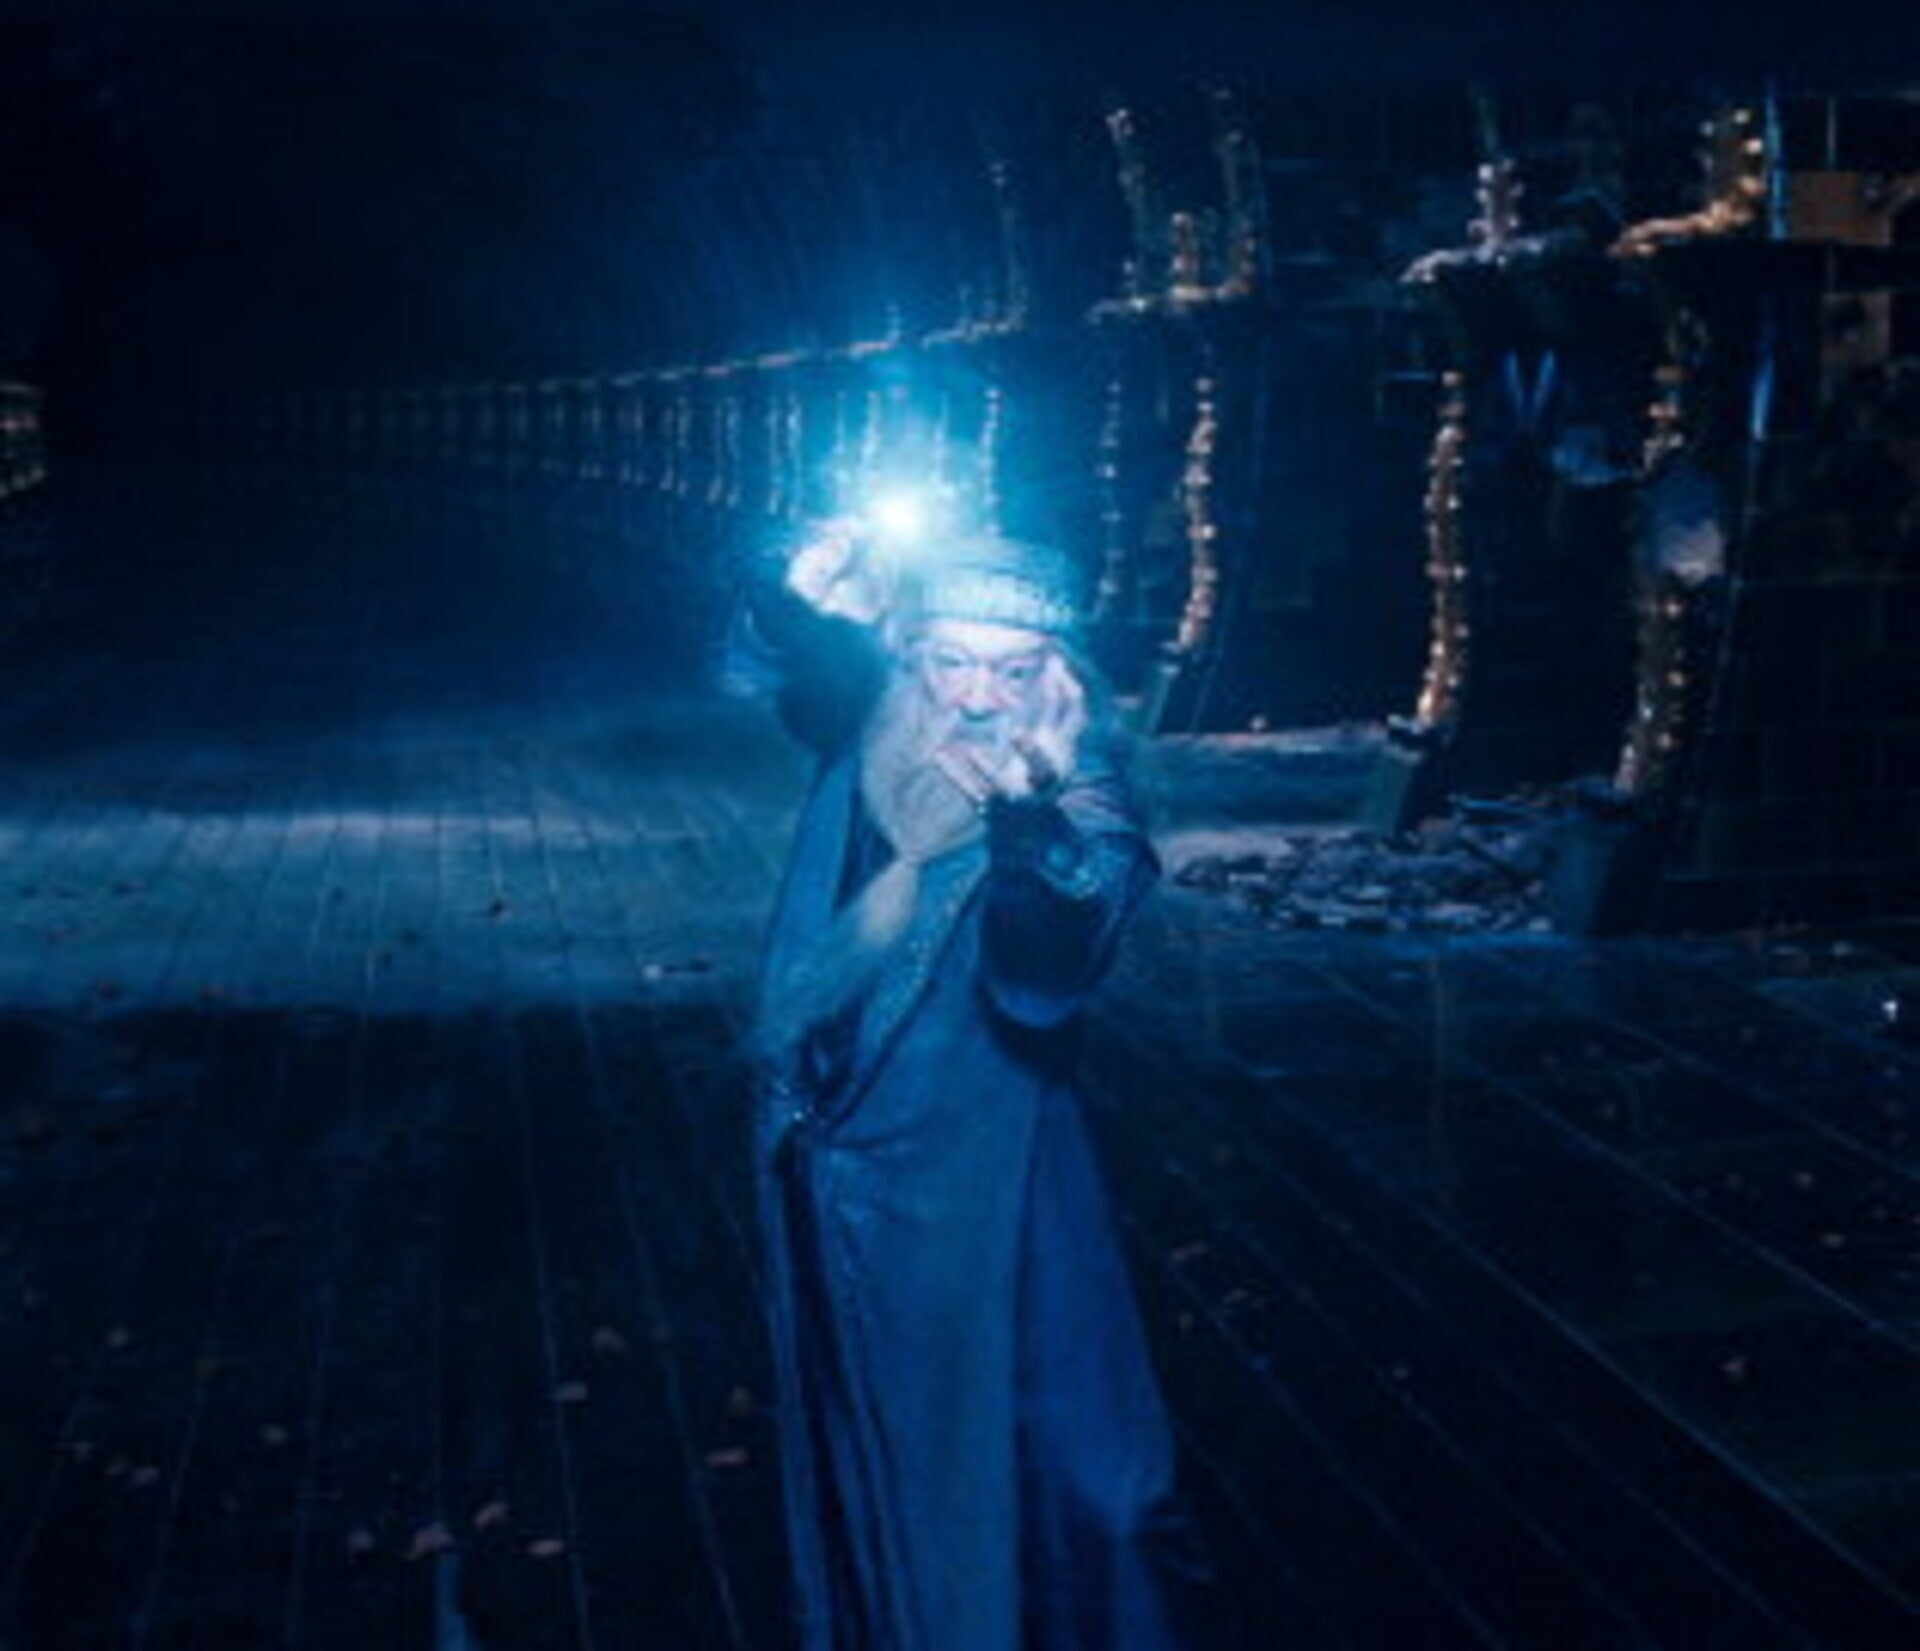 Harry Potter and the Order of the Phoenix - Image 34